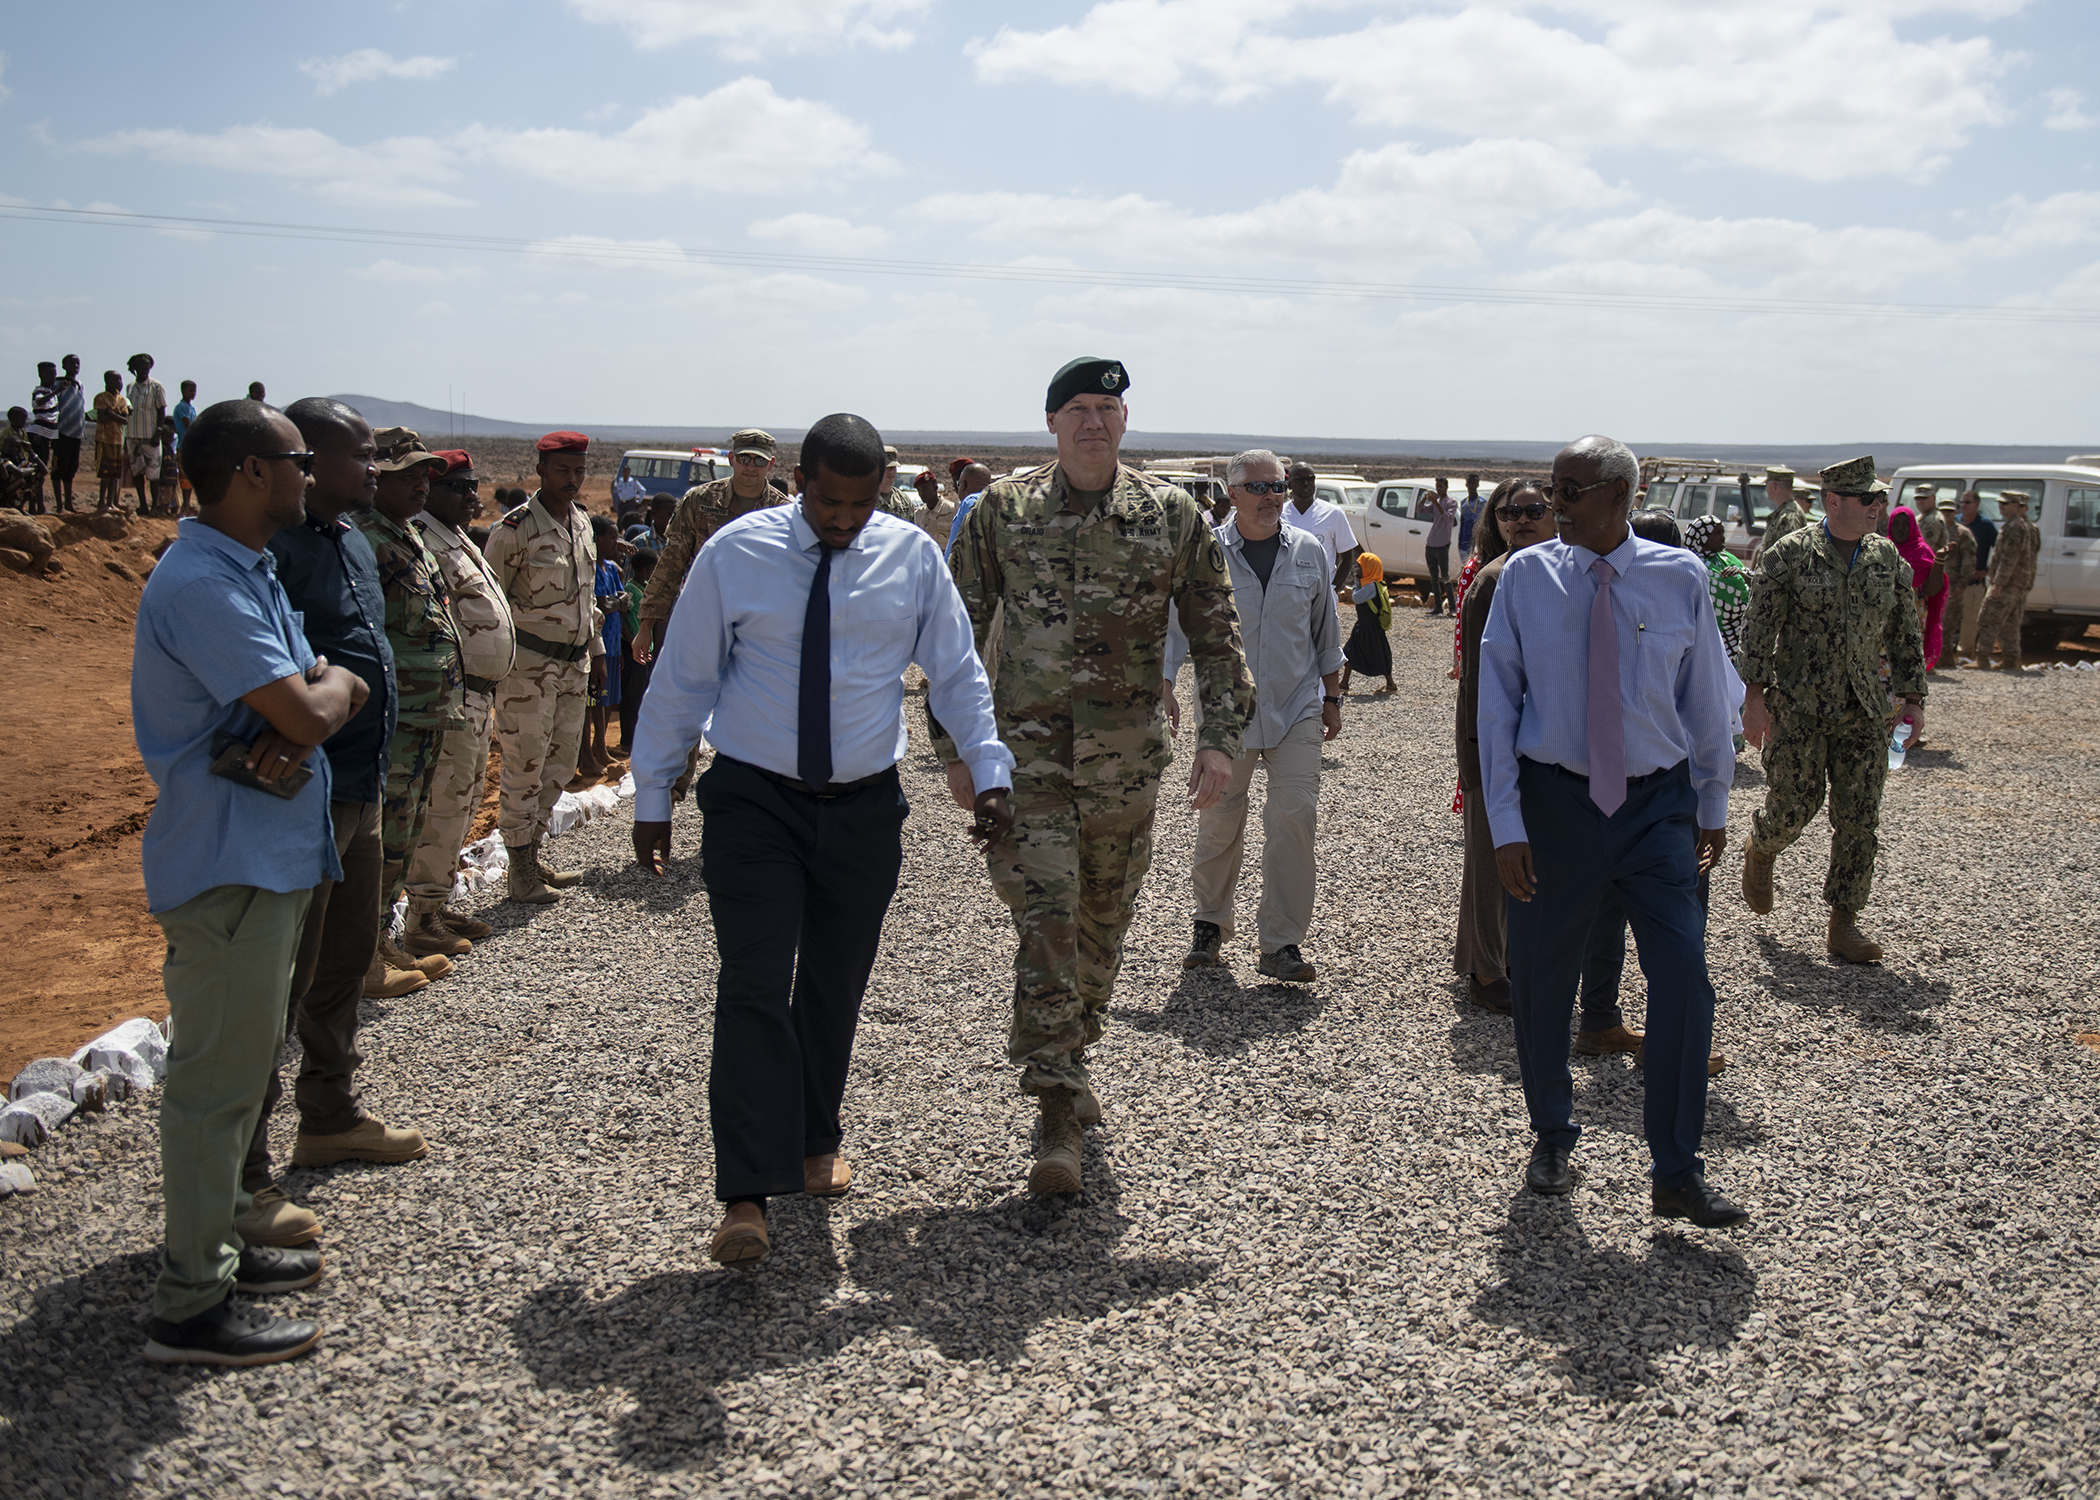 U.S. Army Maj. Gen. James D. Craig, commanding general, Combined Joint Task Force-Horn of Africa (CJTF-HOA), walks with Djiboutian government officials during the Ali Oune Medical Clinic ribbon cutting ceremony in Ali Oune, Djibouti, Jan. 31, 2019. The clinic, which U.S. Navy Seabees from Naval Mobile Construction Battalion 1, assigned to CJTF-HOA, have been working to complete for five months, is intended to enhance the Ministry of Health for Djibouti's ability to provide basic medical, birth and after care to the Ali Oune village and its more than 1,000 residents and rural neighbors. (U.S. Air Force photo by Tech. Sgt. Shawn Nickel)